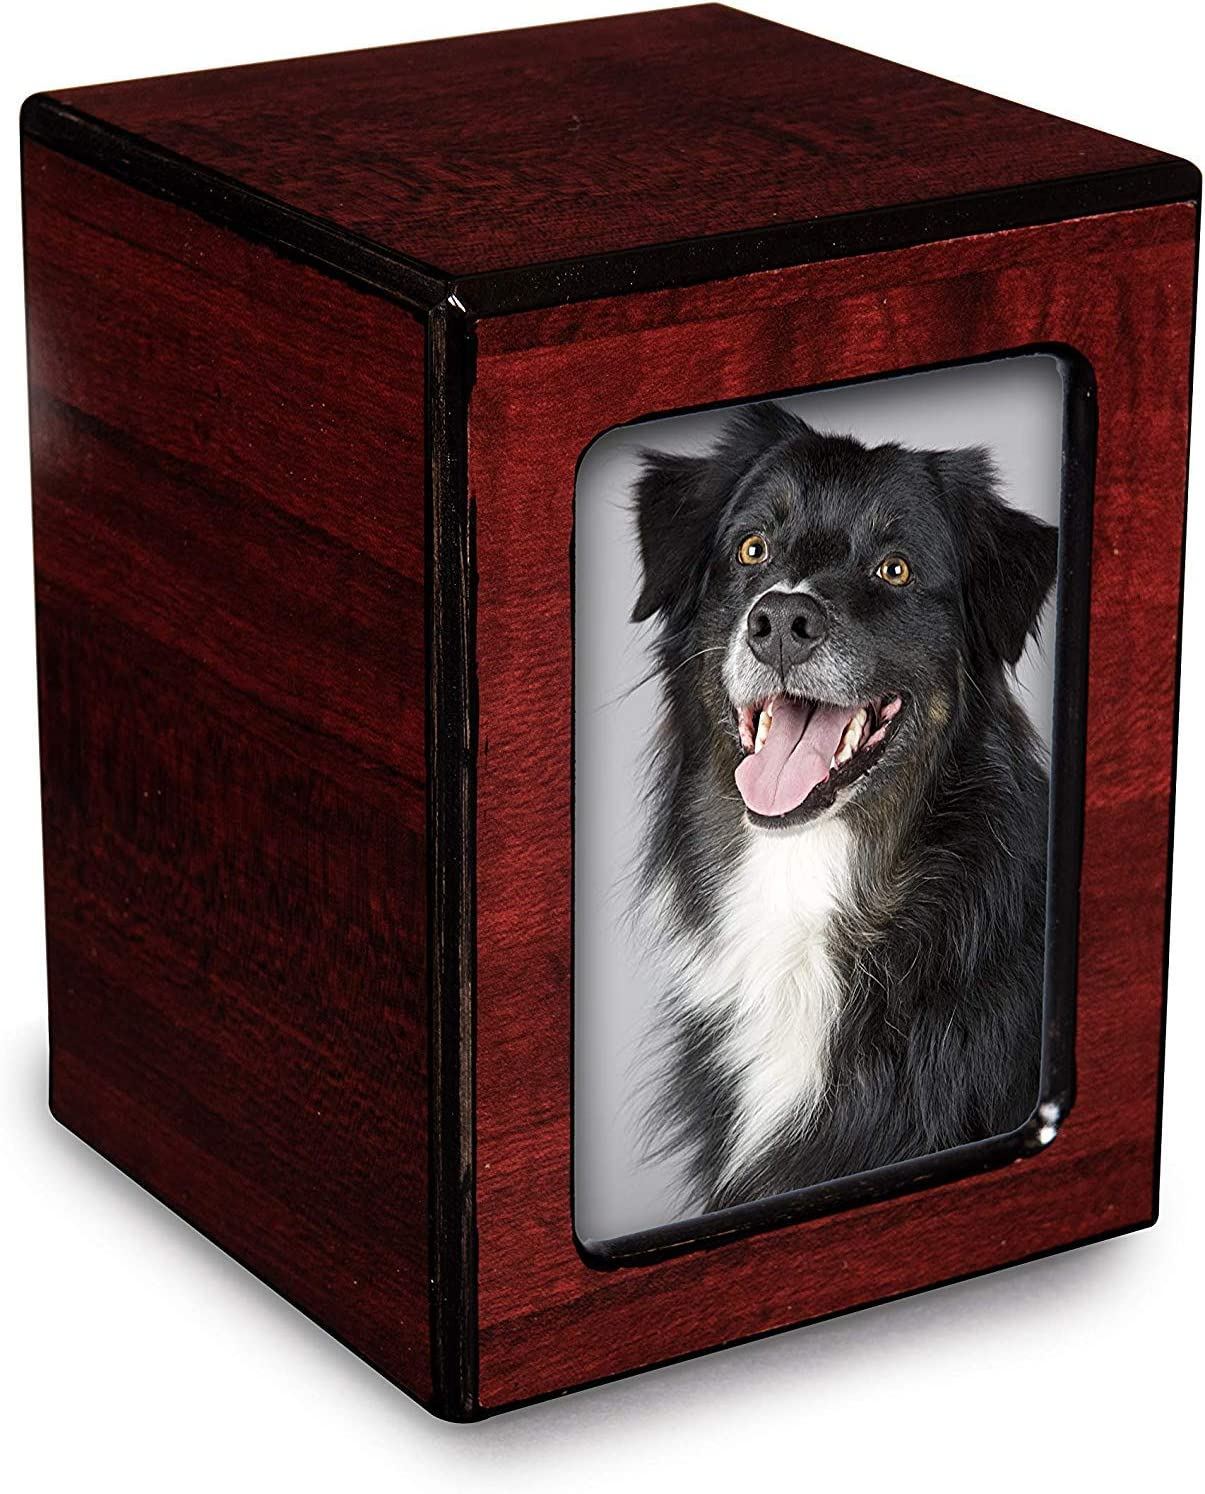 Chateau Urns - Society Collection - Photo Keepsake Cremation Urn - Memorial Box for Ashes - Small (up to 46 lbs) - Cherry Finish